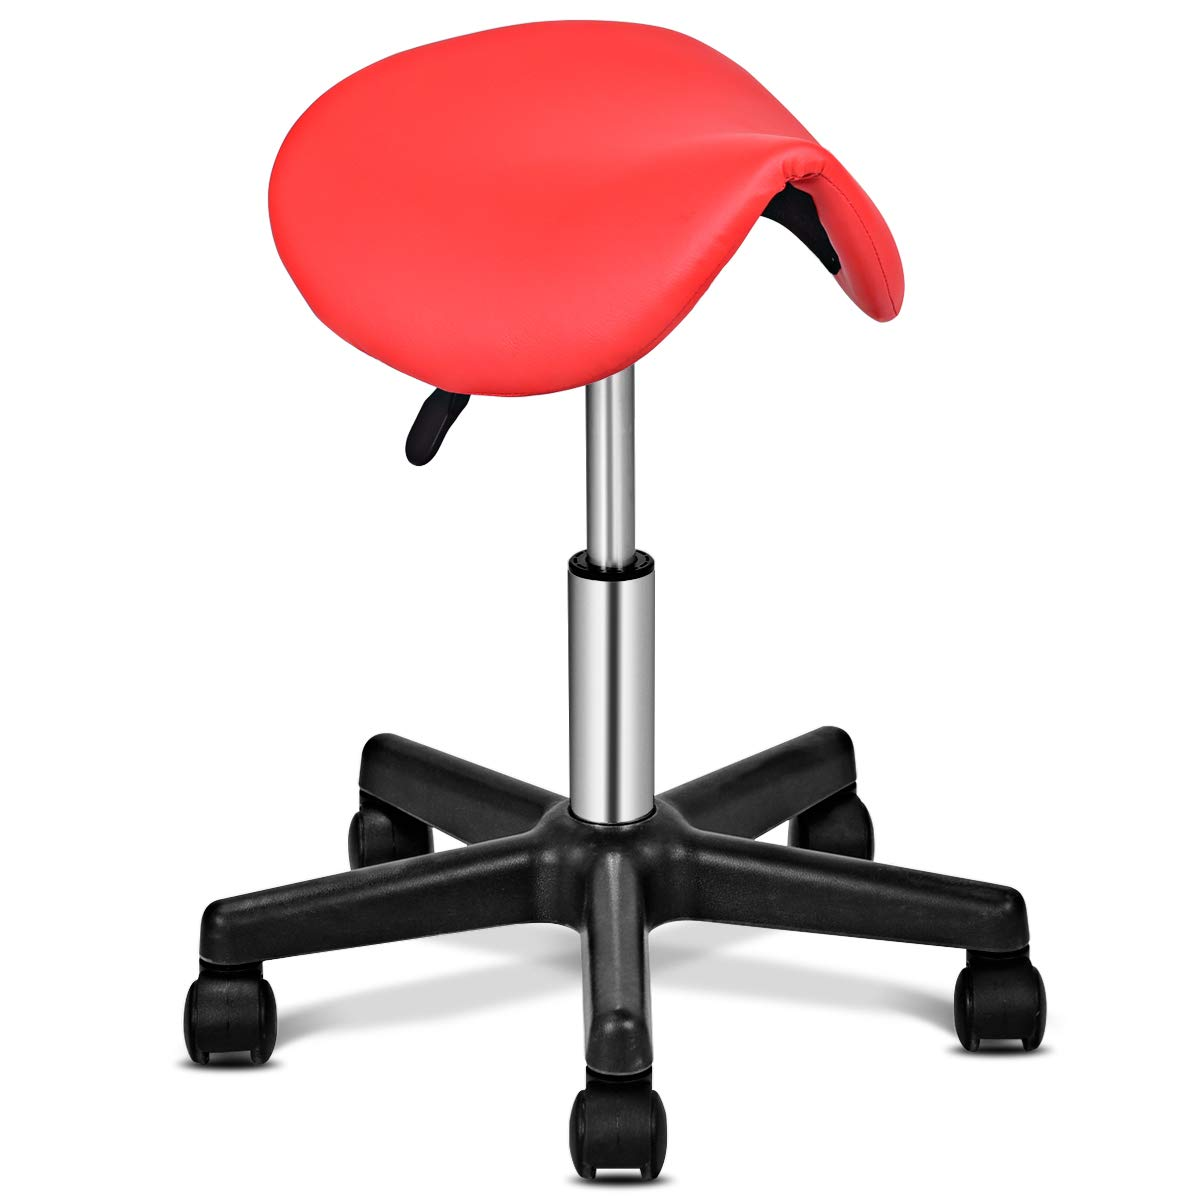 Giantex Saddle Stool Salon Hydraulic Spa Rolling Chair, No Backrest Rolling Clinic Spa Massage Stools Chairs for Spas Beauty Salons Office Massage Tattoo Facial Salon Stool with Wheels Red